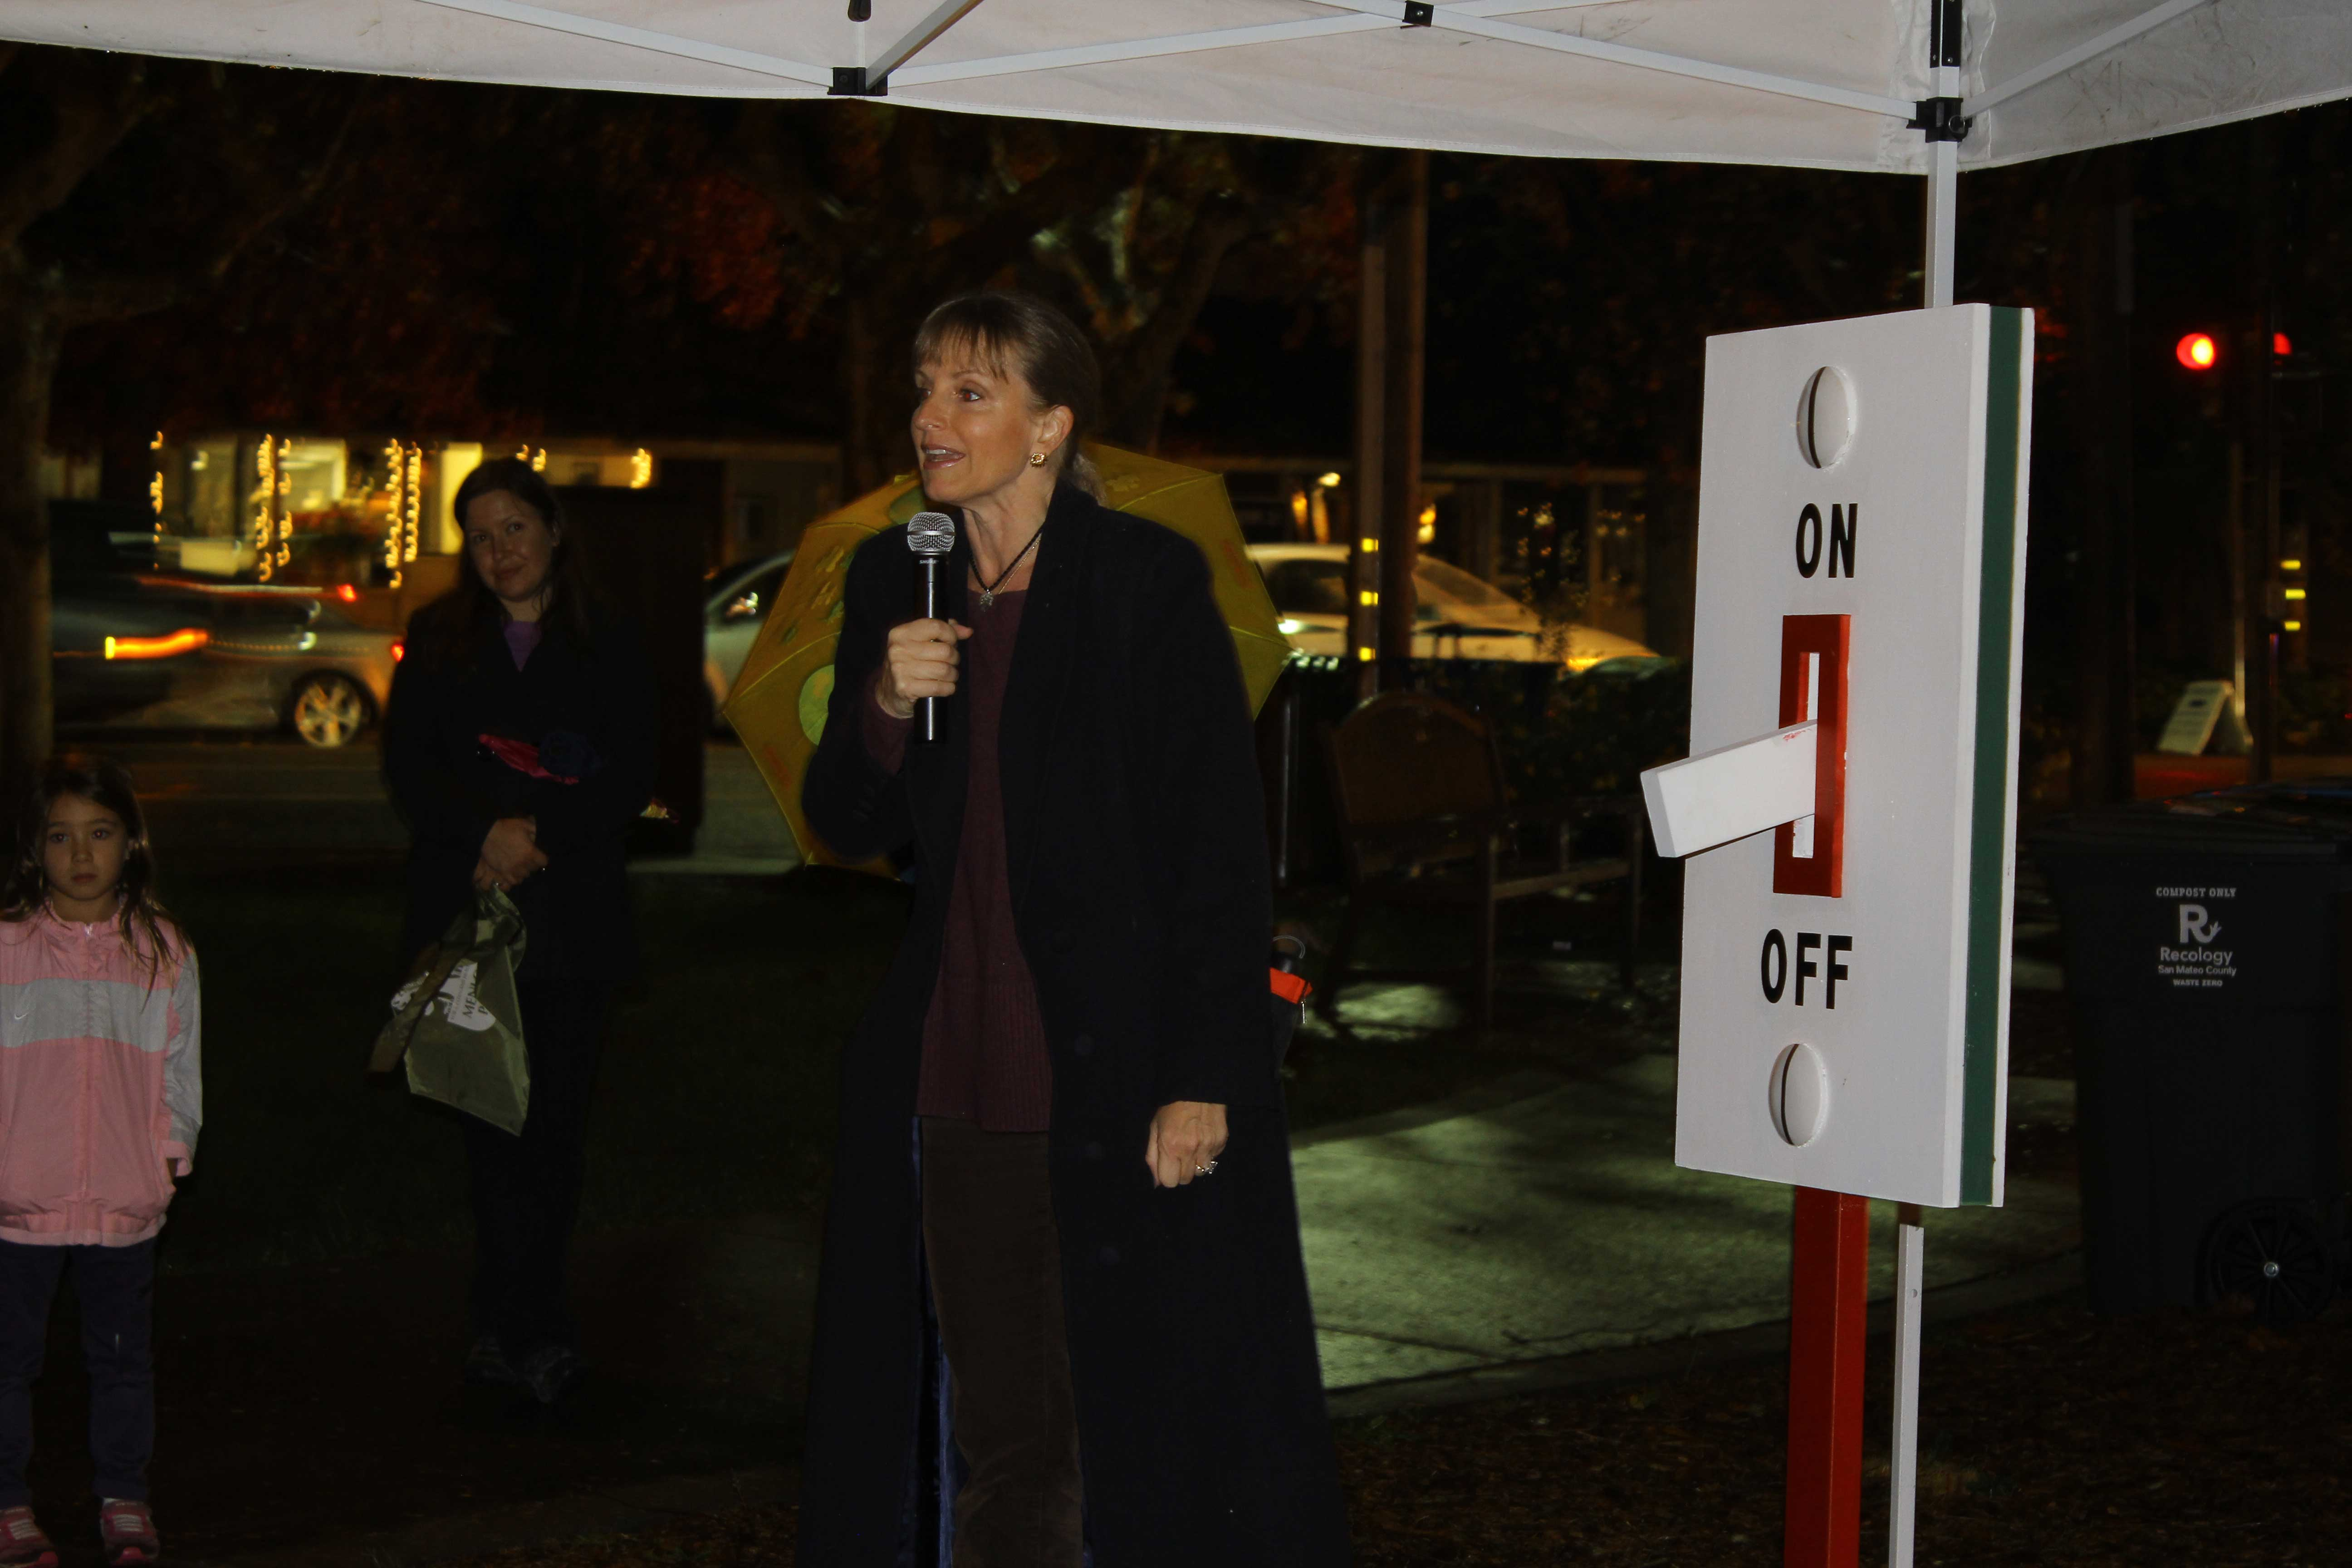 Menlo Park Mayor Catherine Carlton counts down on Friday's second annual Christmas Tree-lighting ceremony in Fremont Park, with dozens of children and parents in attendance despite the drizzle, on Dec. 5, 2014. (Sabrina Elfarra/Peninsula Press)